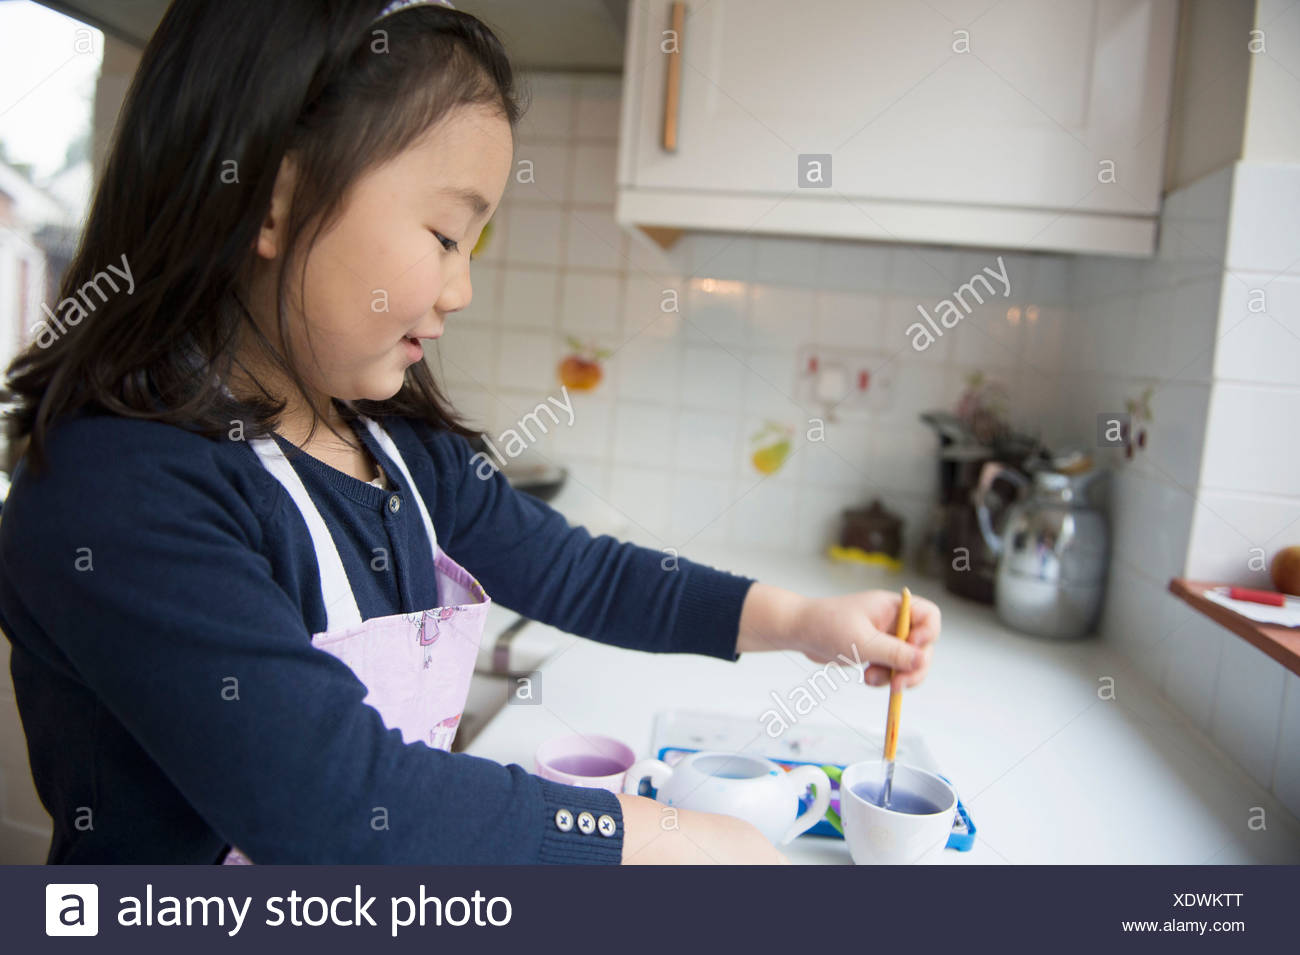 Young girl dipping paintbrush in water bowl in kitchen - Stock Image